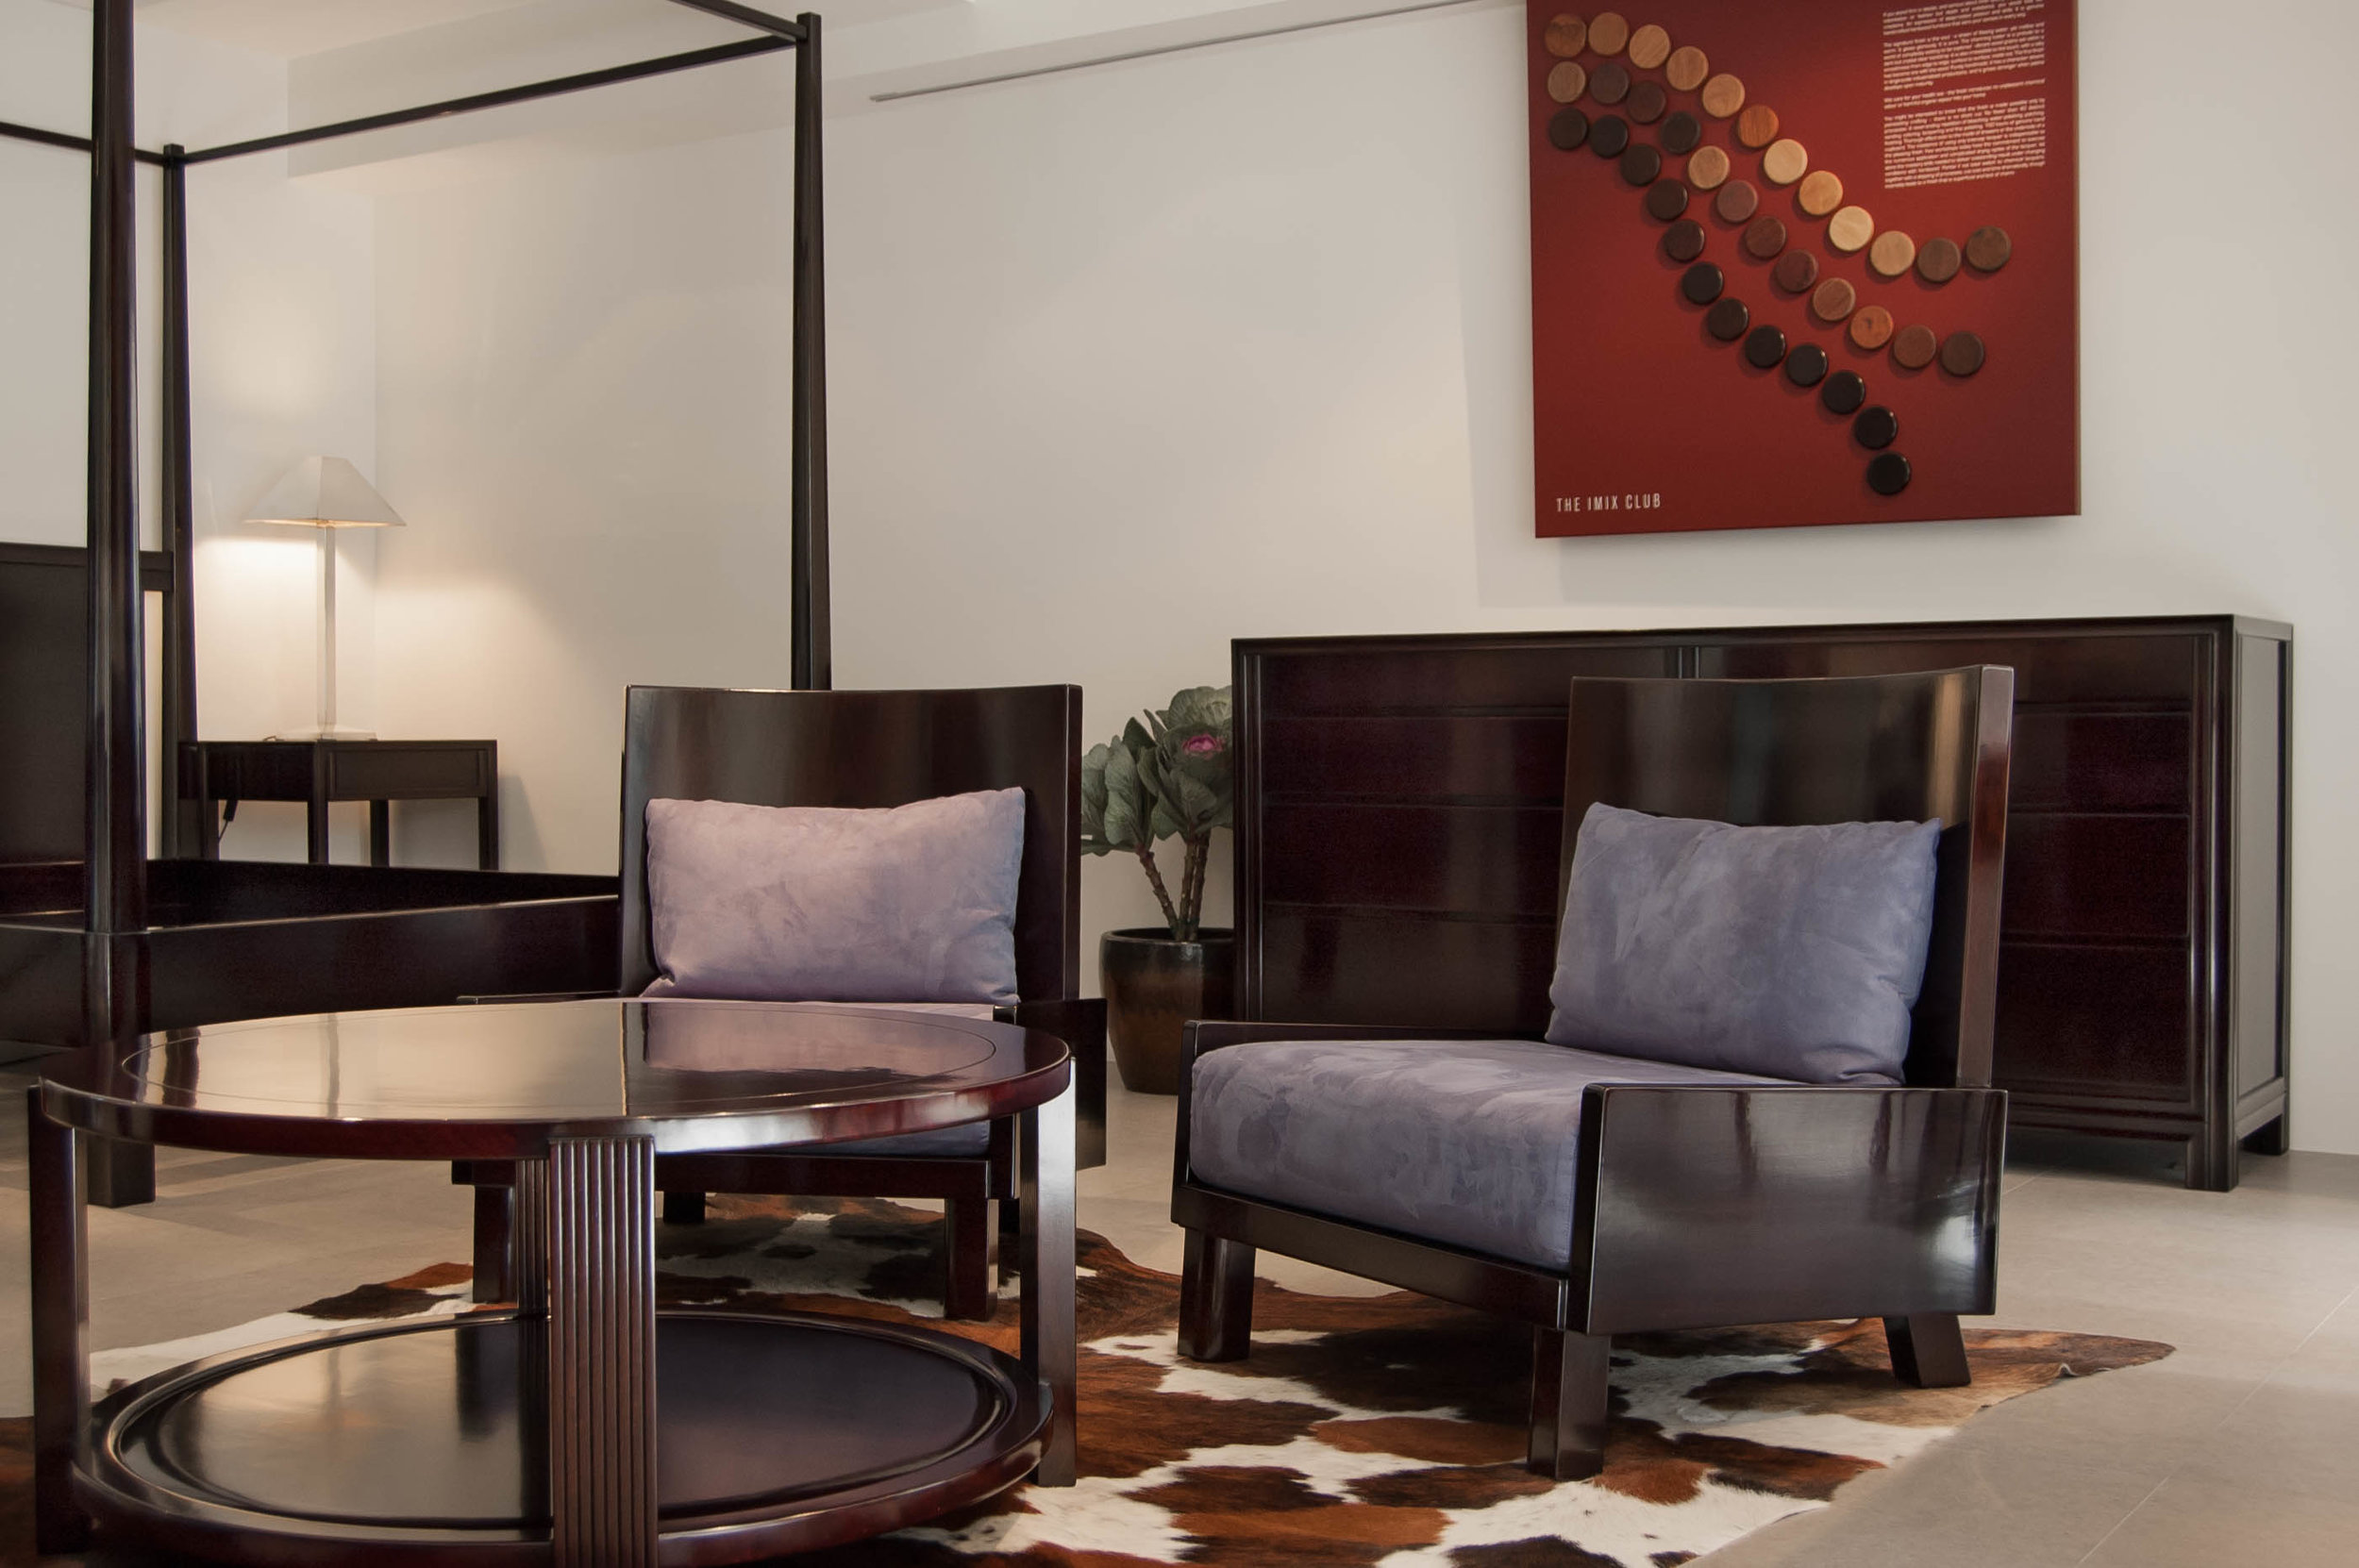 ....furniture setting : coffee table, lounge chair, chest of drawers and canopy bed..家具展廊陈设:咖啡台,安了椅,抽屉柜,架子床....